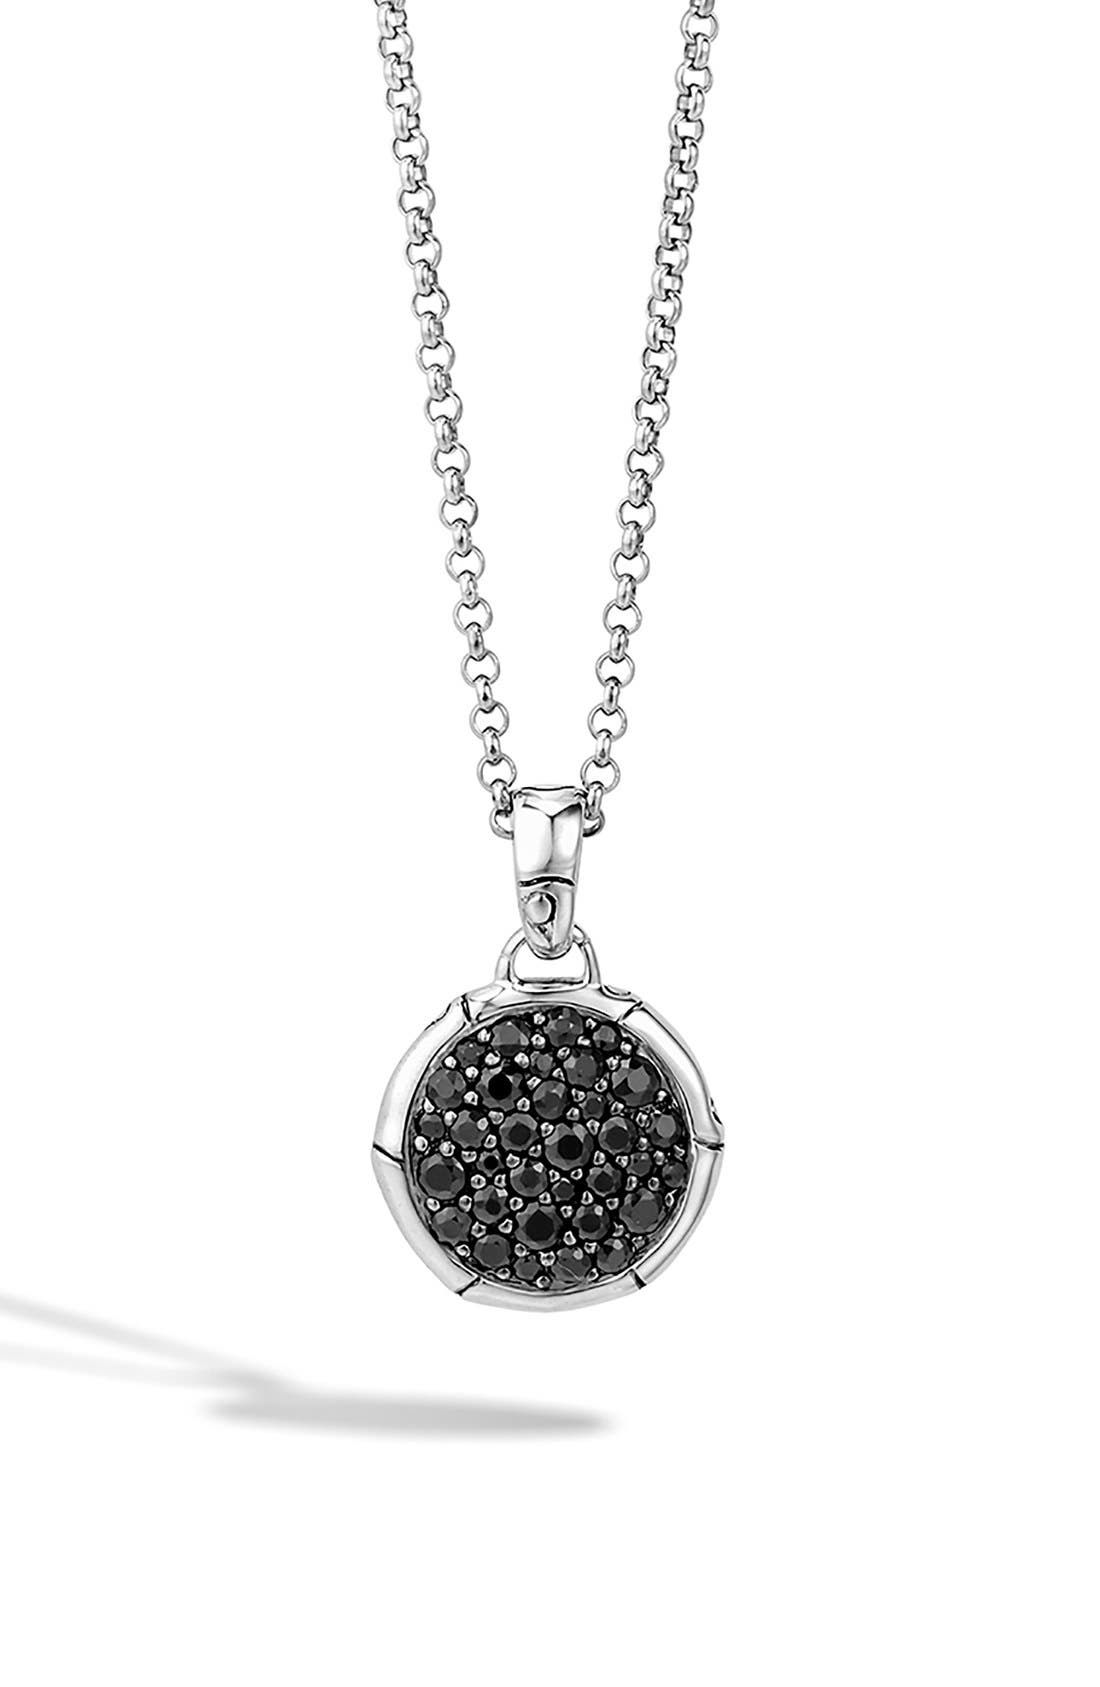 'Bamboo' Small Round Pendant Necklace,                             Main thumbnail 1, color,                             BLACK SAPPHIRE